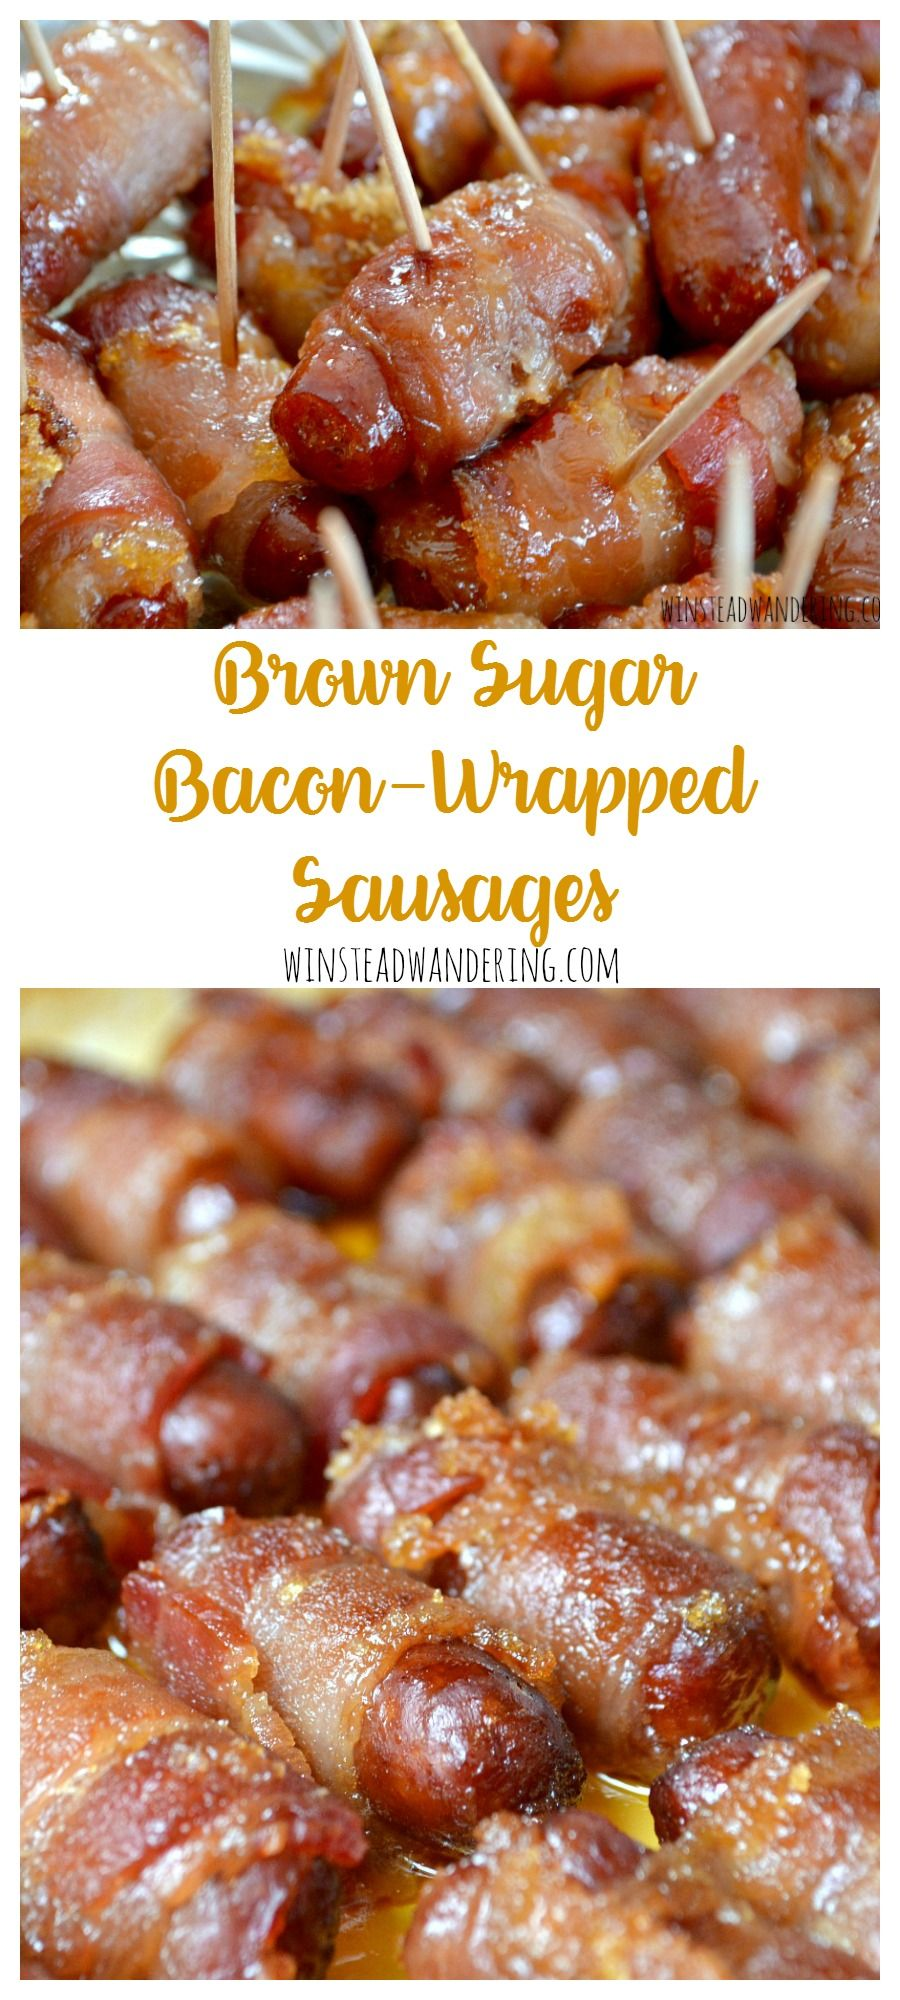 these brown sugar bacon wrapped sausages are seriously like crack theyre sweet savory addictive and perfect for any party youre having